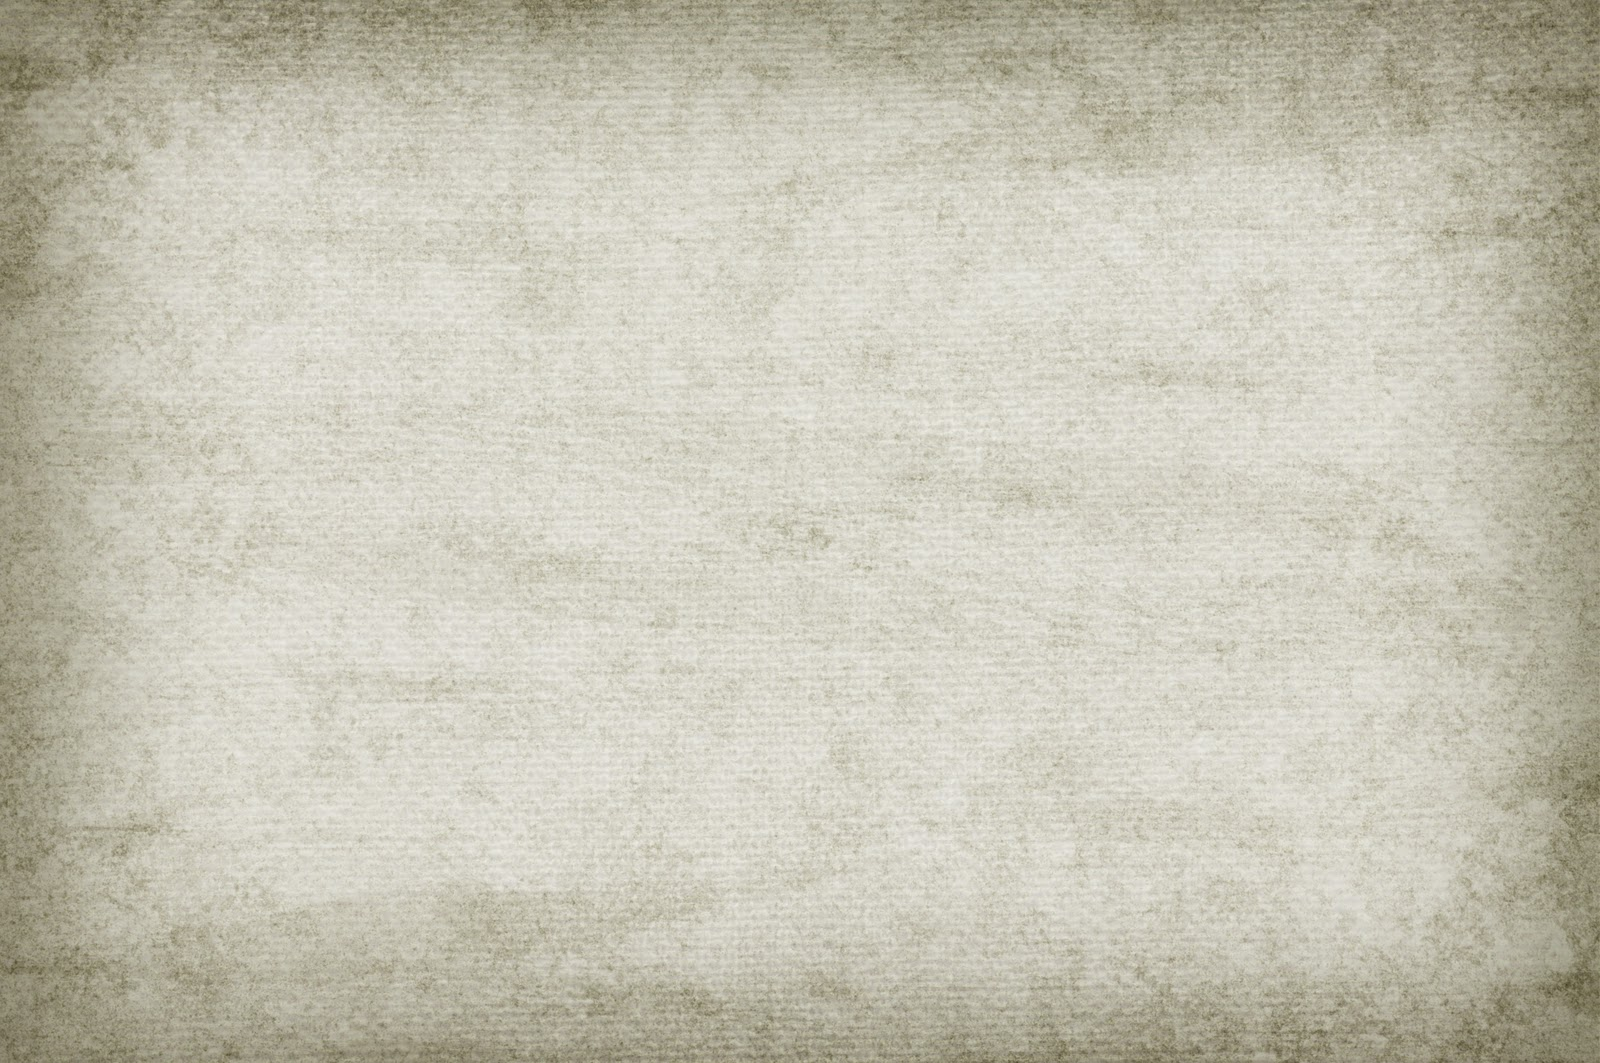 Pictures of Newspaper Texture Photoshop - #rock-cafe